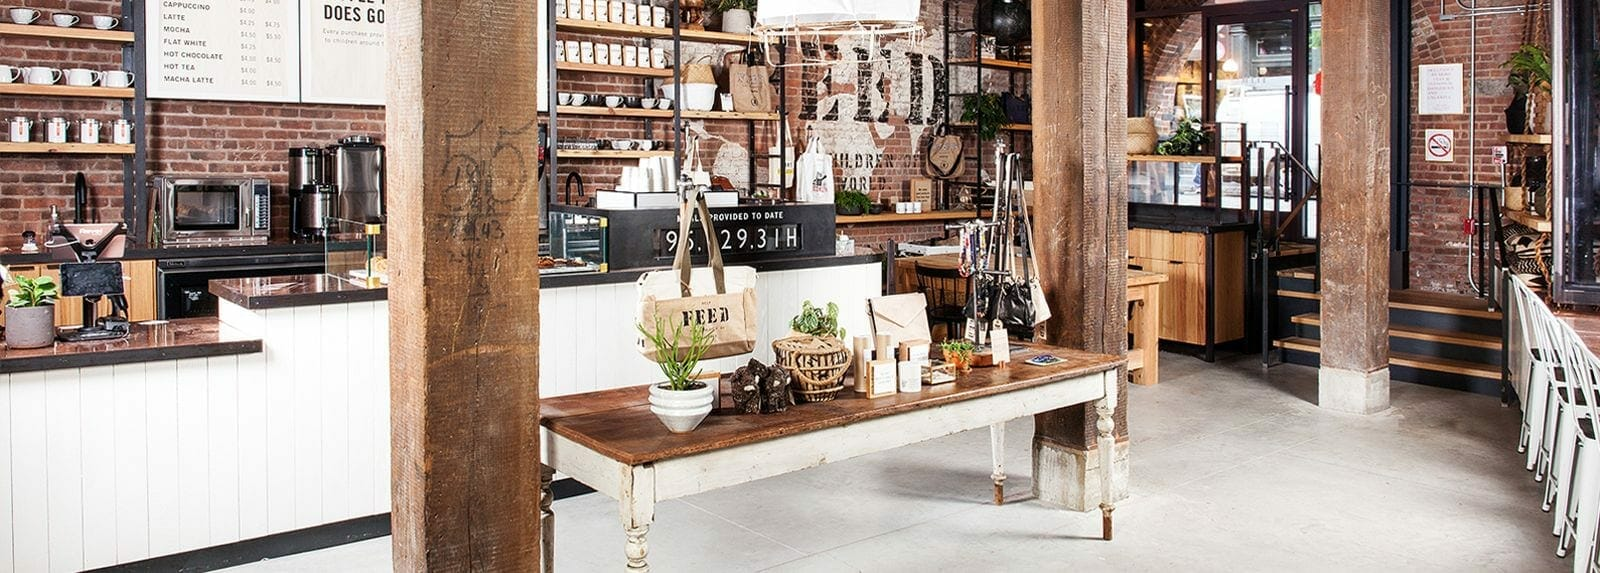 feed empire stores brooklyn interior view